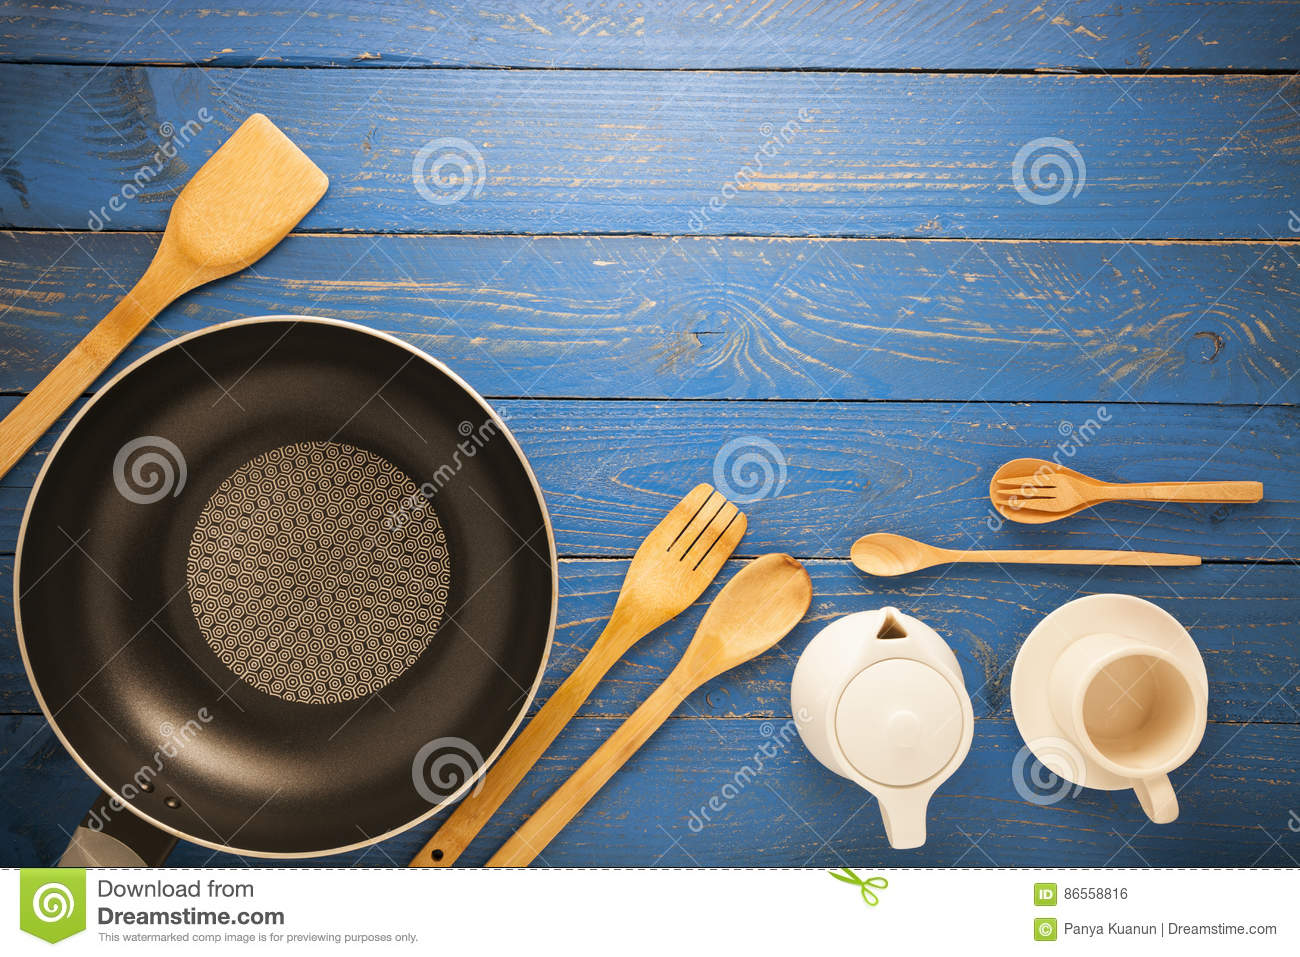 Black Frying Pan With Cooking Utensils On Blue Wood Table Backgr ...